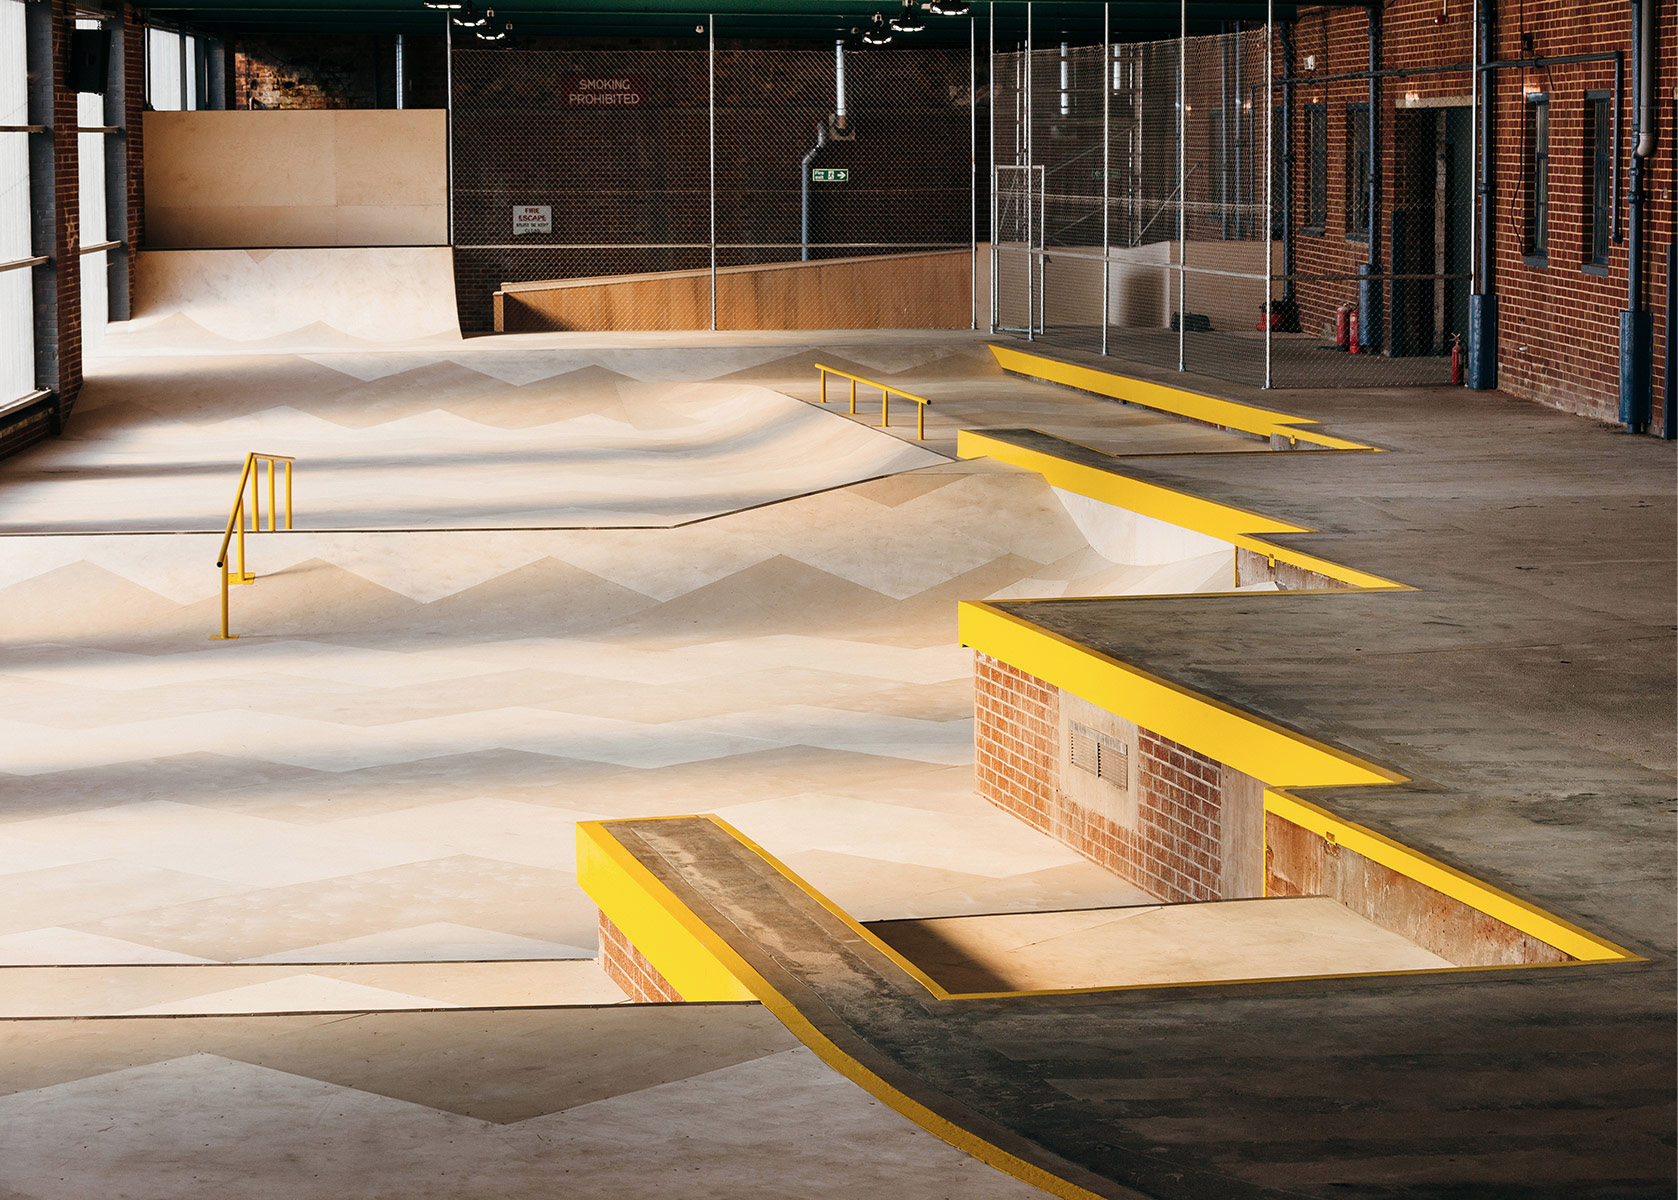 The Loading Bay Skatepark Glasgow